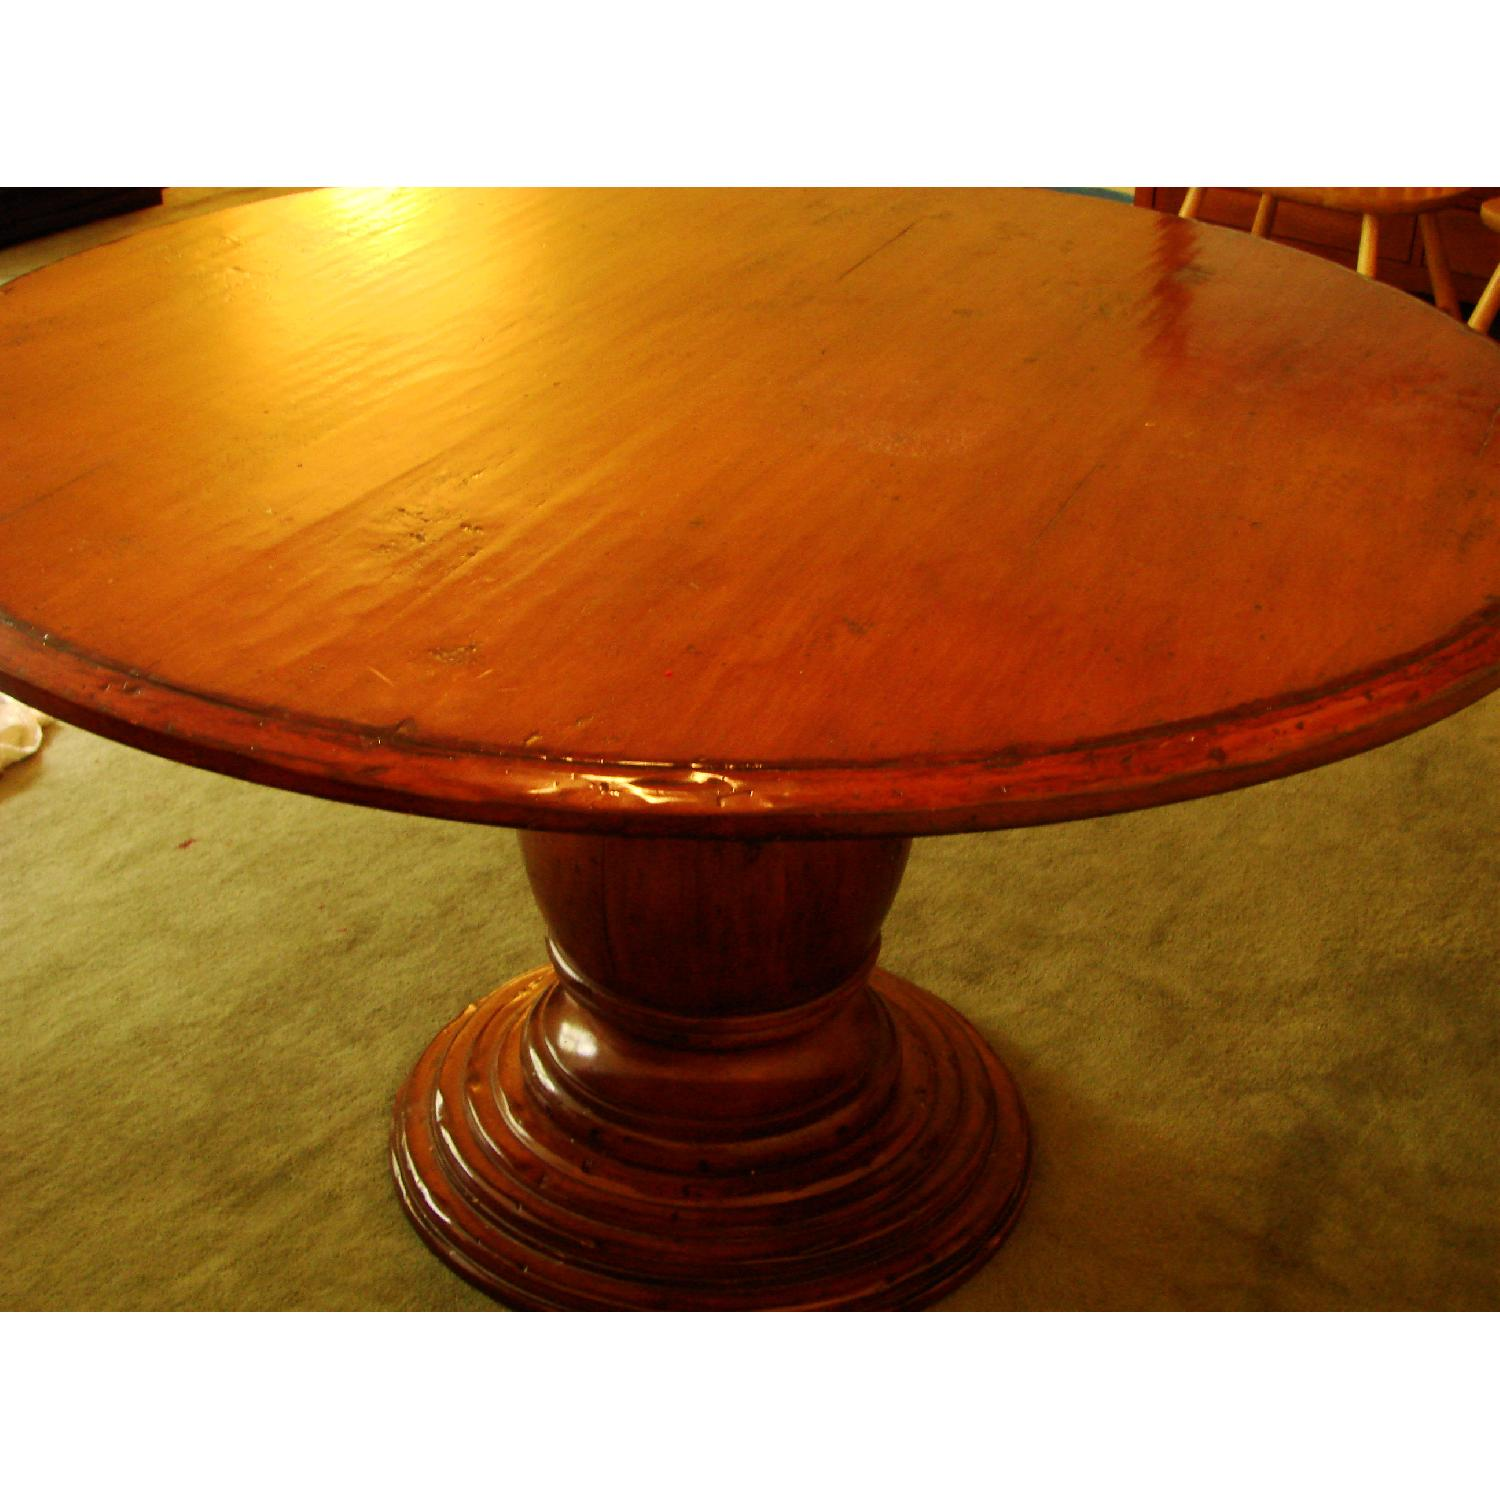 Distressed Wood Round Dining Table - image-5